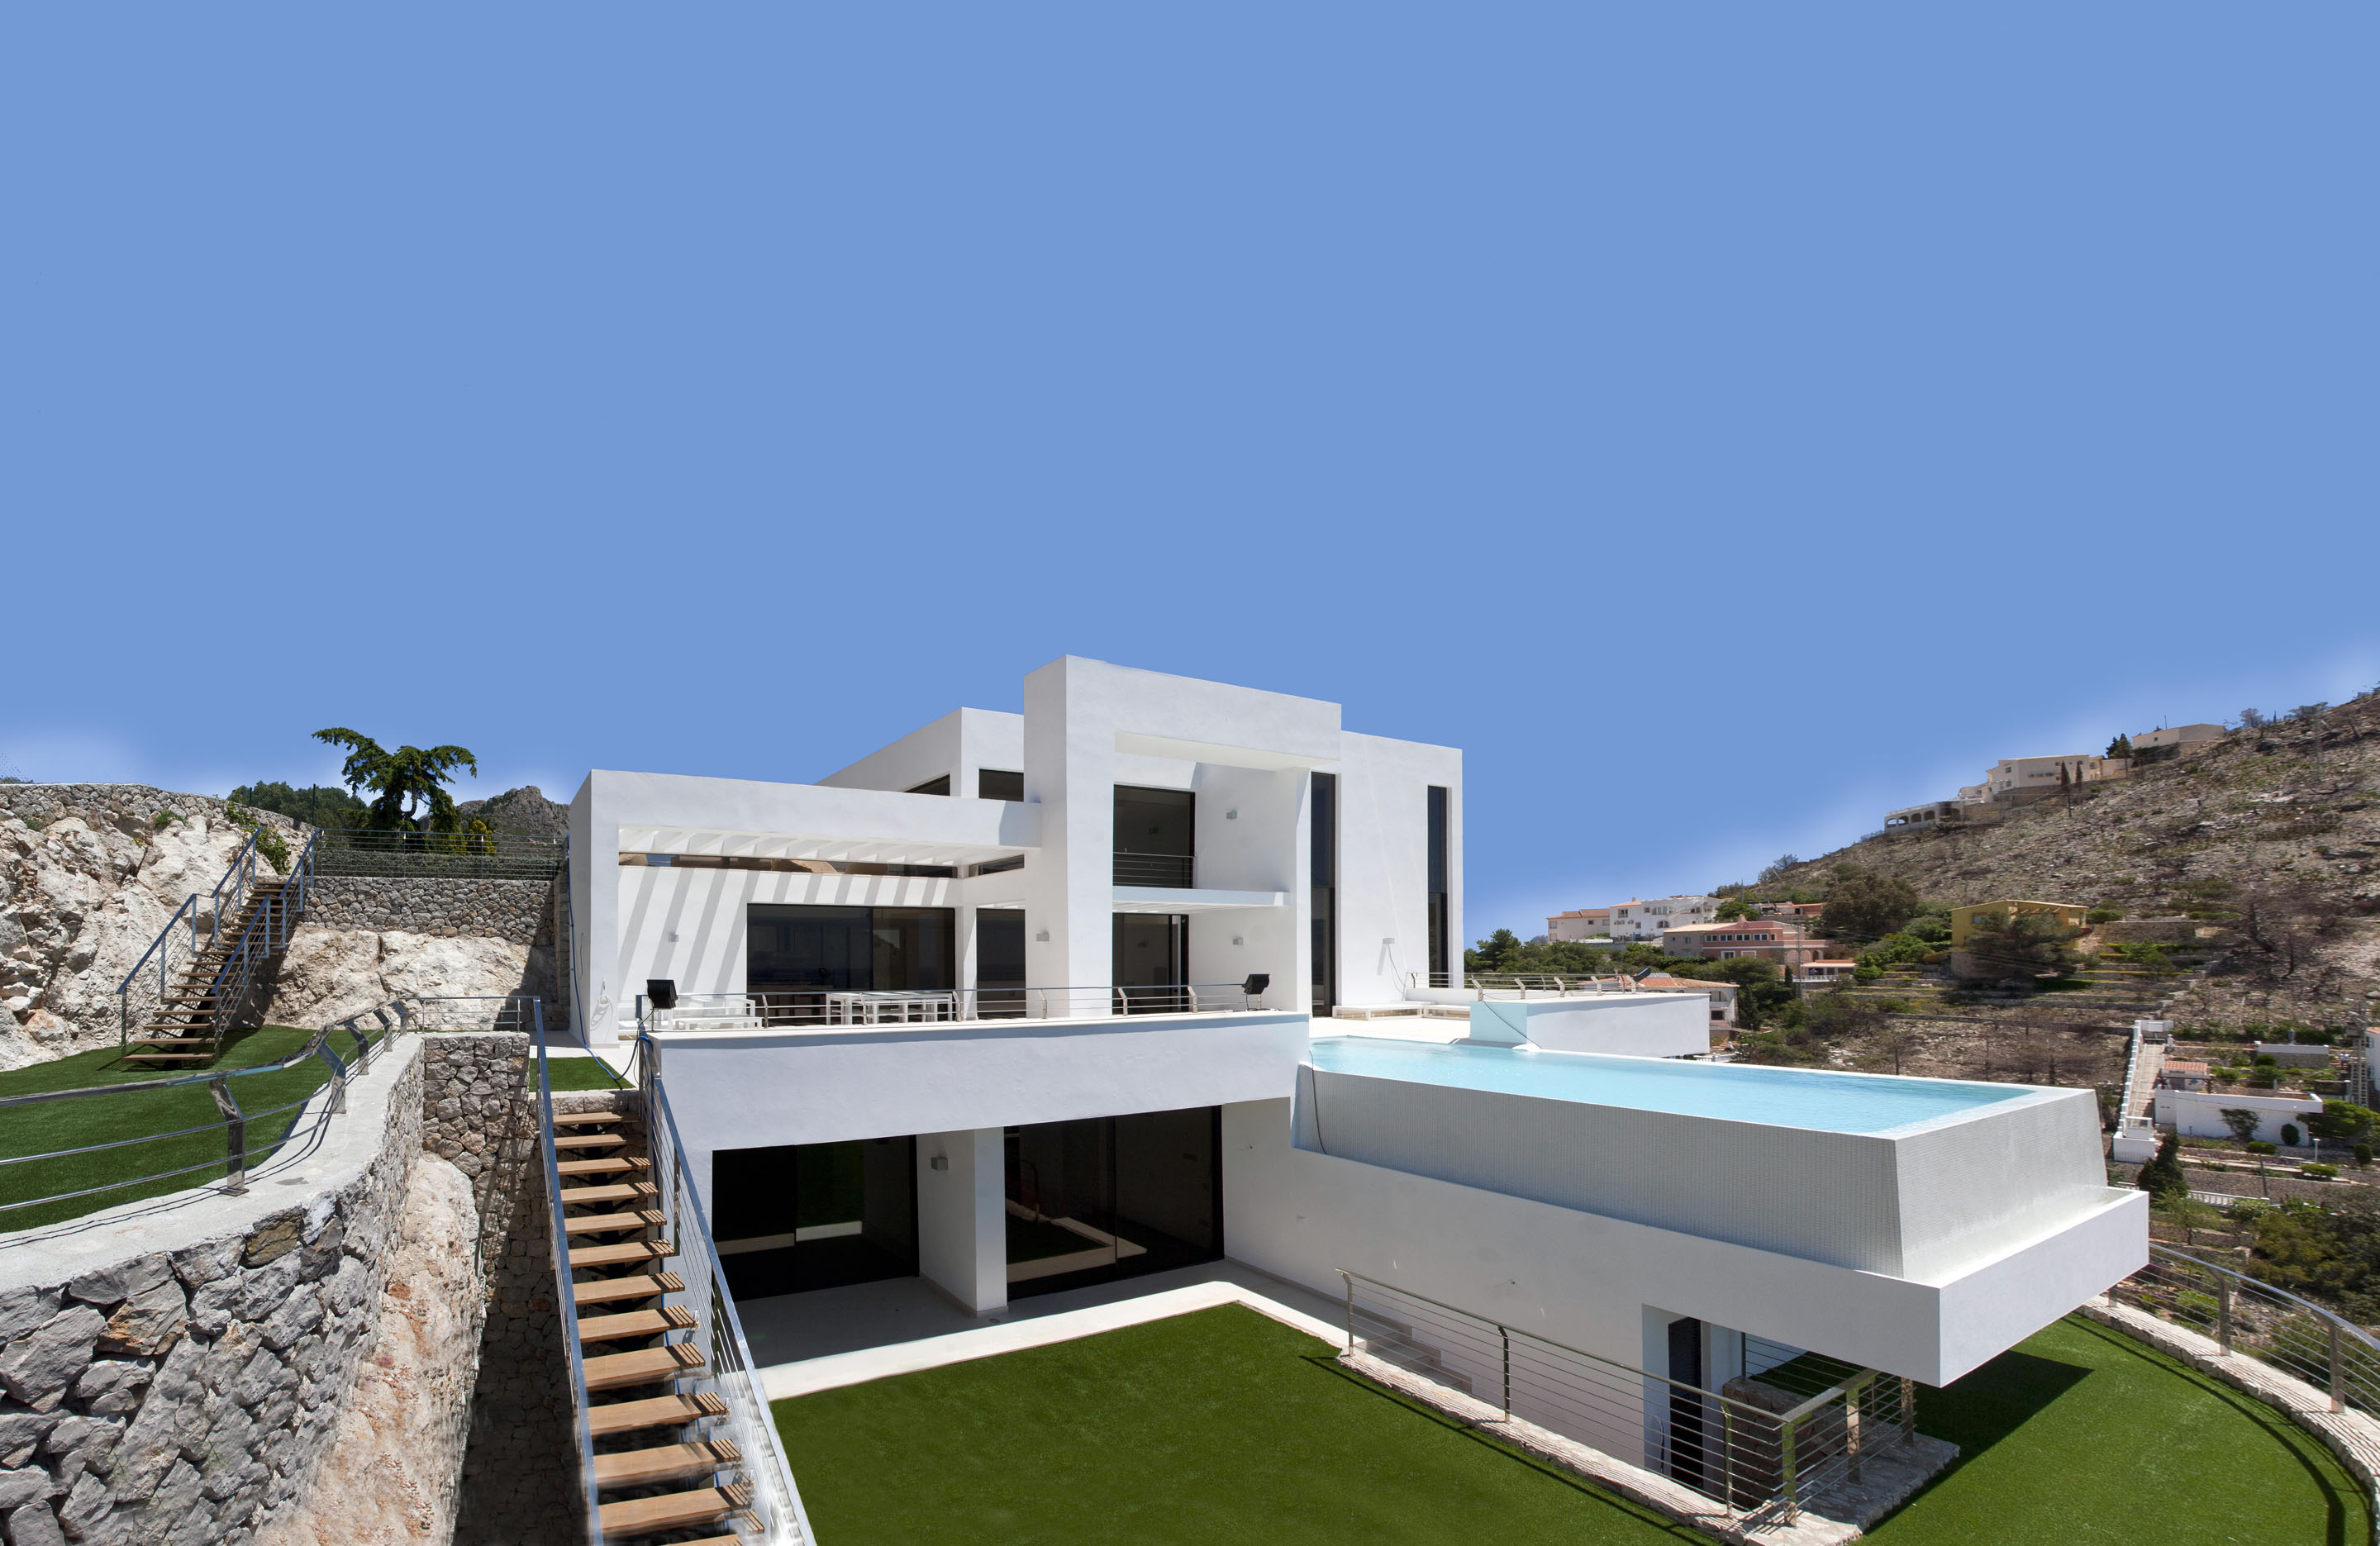 backyard landscaping and swimming pool of the Modern Mansions Superlatives -La Perla del Mediterraneo by Carlos Gilardi